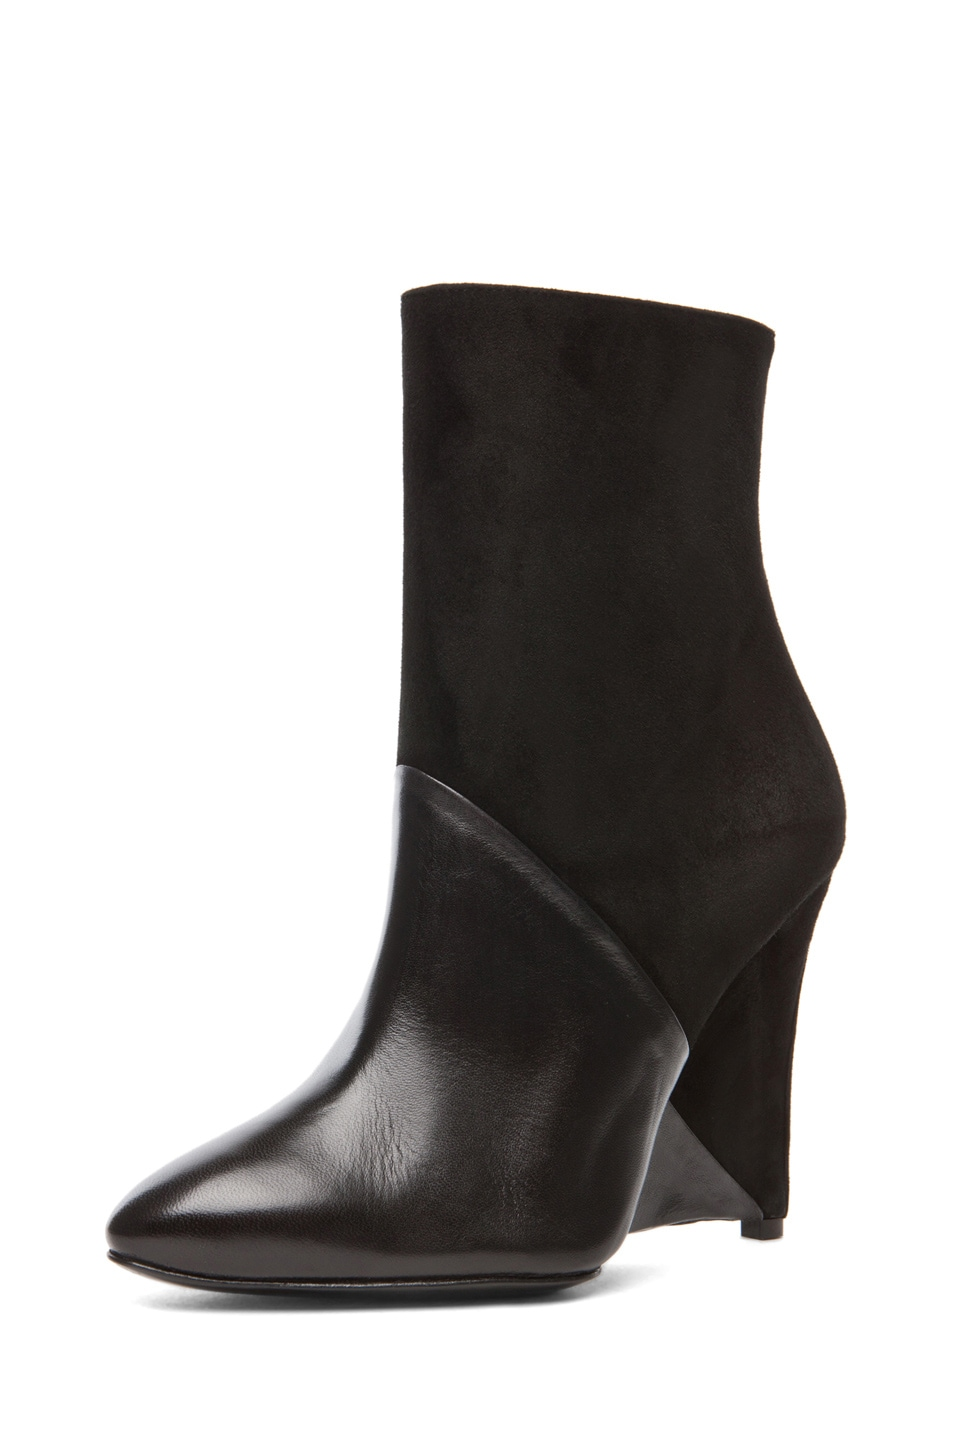 Image 2 of Neil Barrett White Dijon Suede Bootie in Black